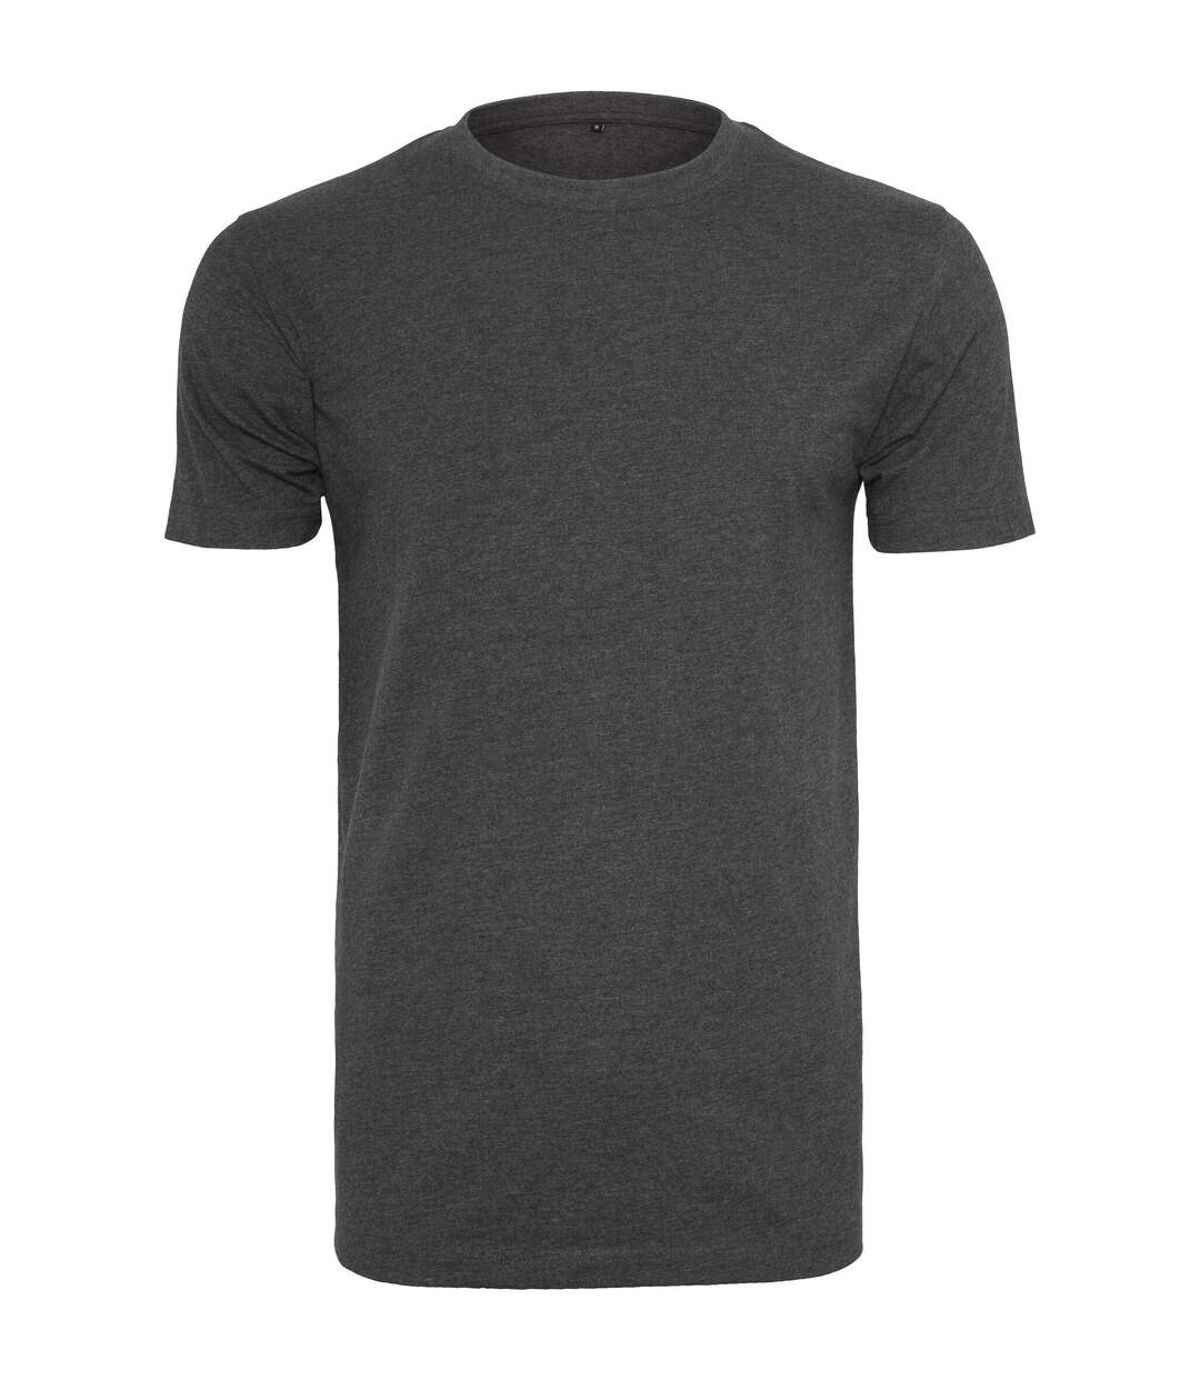 Build Your Brand Mens T-Shirt Round Neck (Charcoal) - UTRW5815